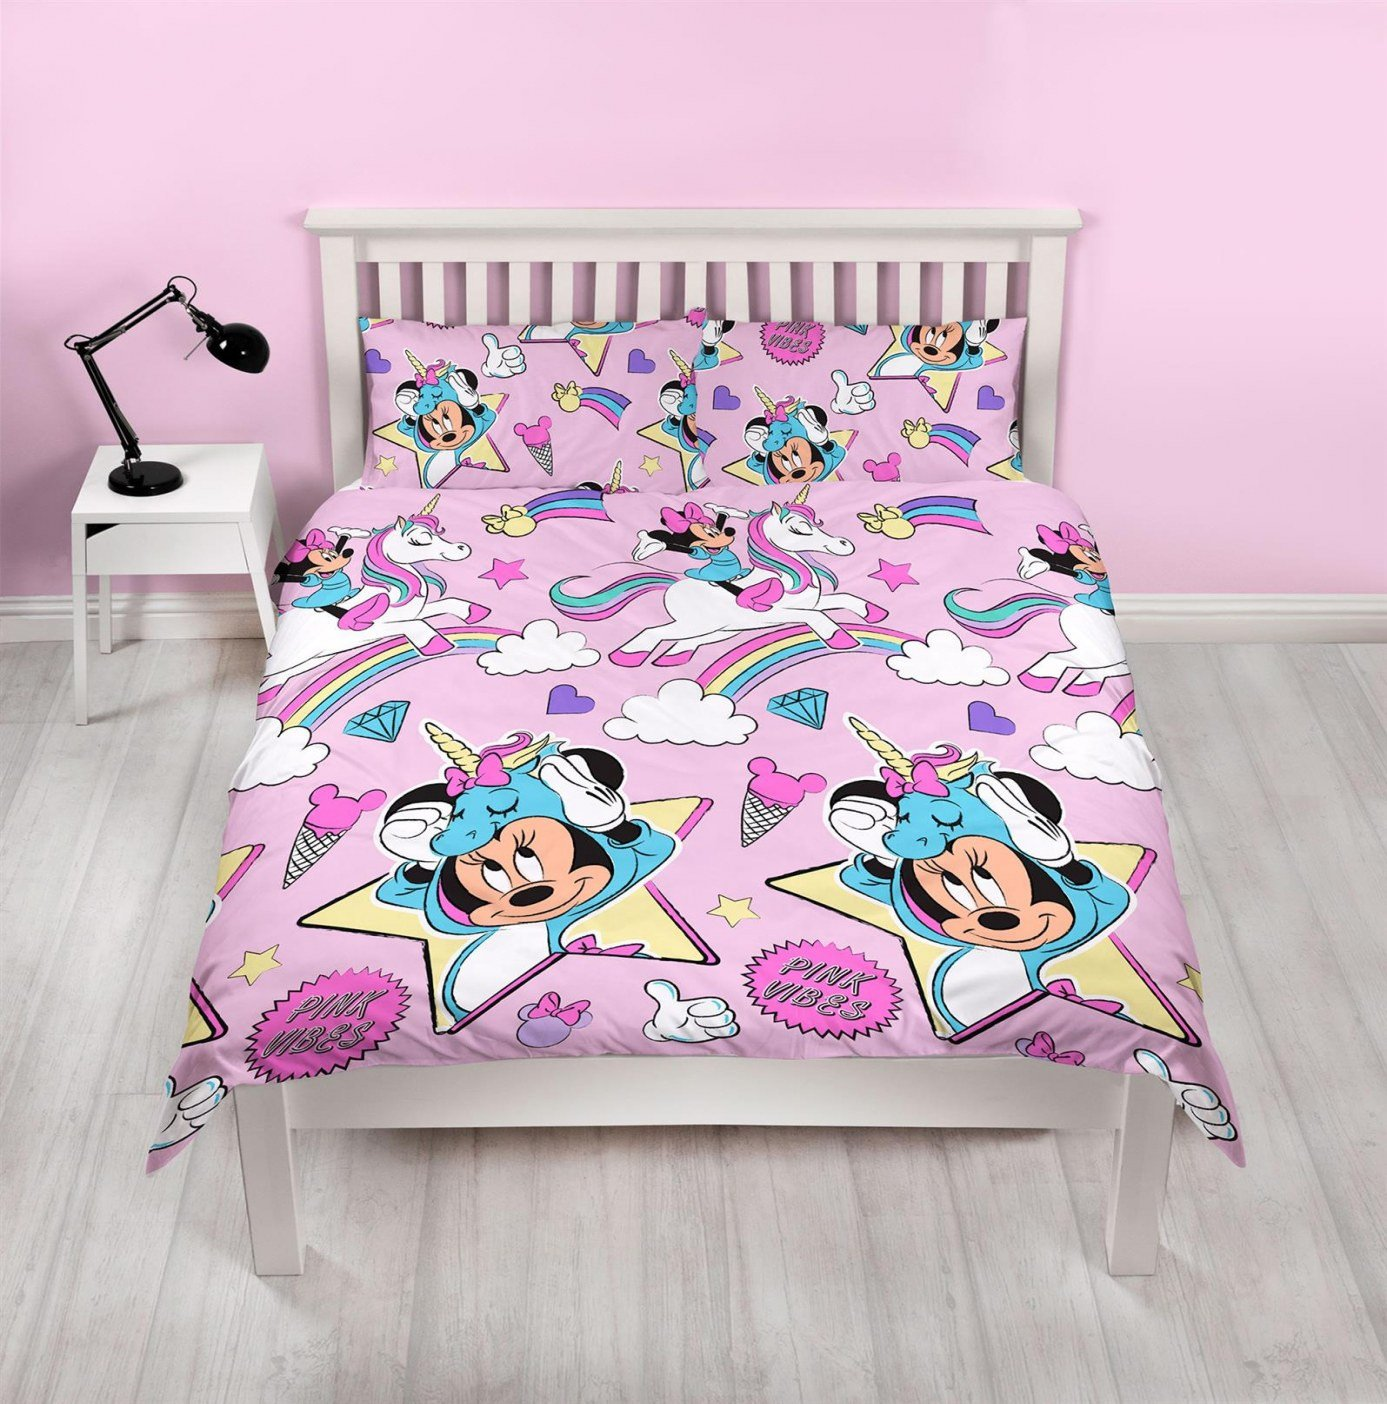 Minnie Mouse Bedroom Furniture Inspirational Minnie Mouse Room In A Box Details About Disney Mickey